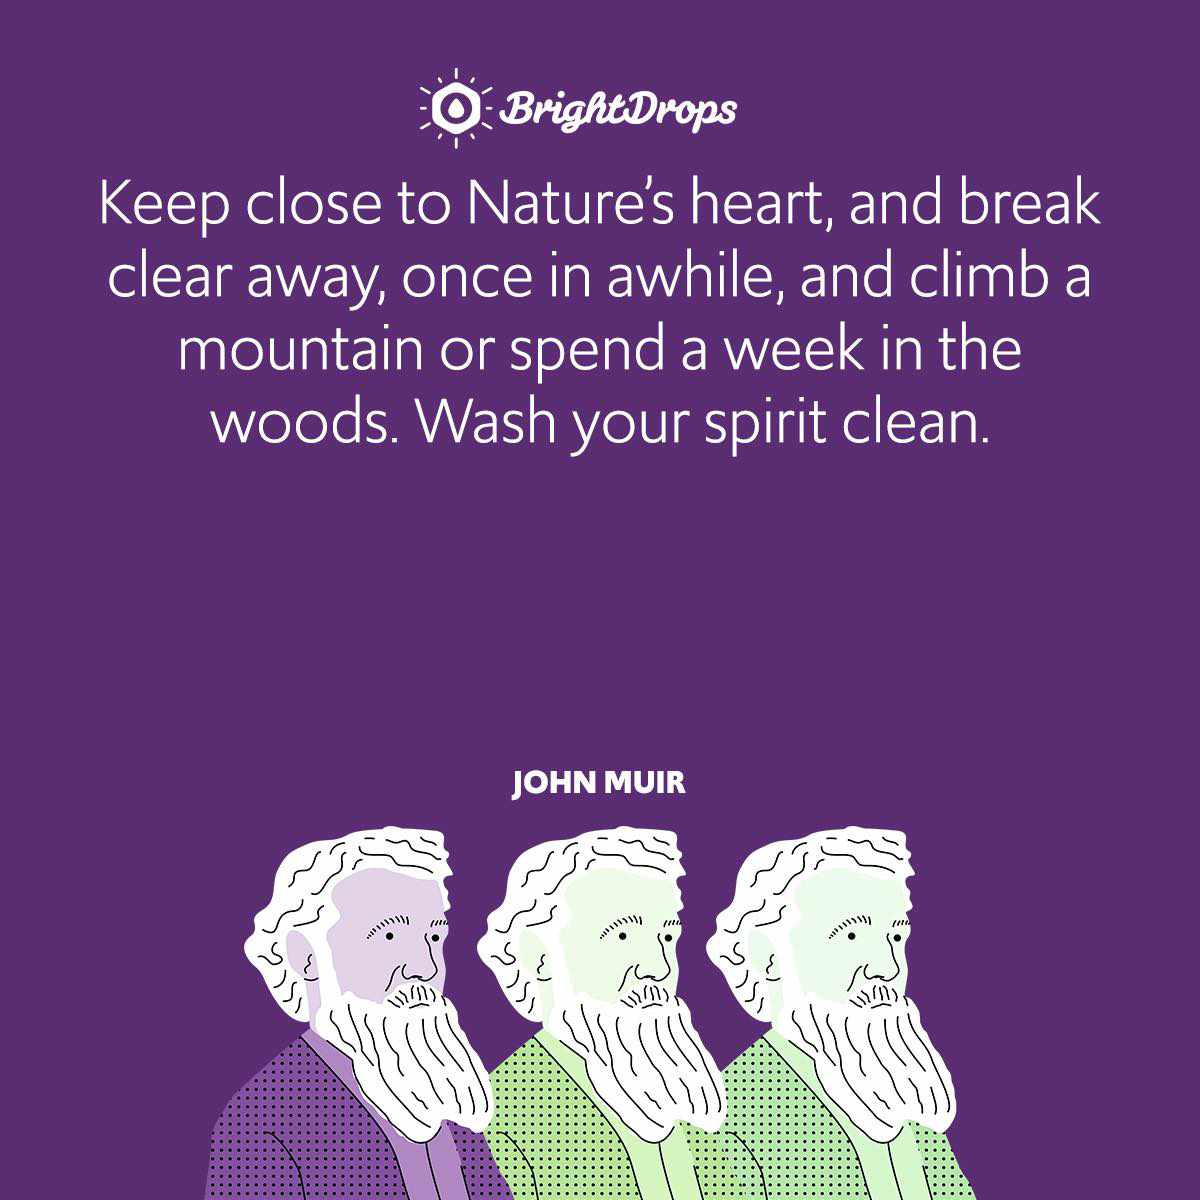 Keep close to Nature's heart, and break clear away, once in awhile, and climb a mountain or spend a week in the woods. Wash your spirit clean.